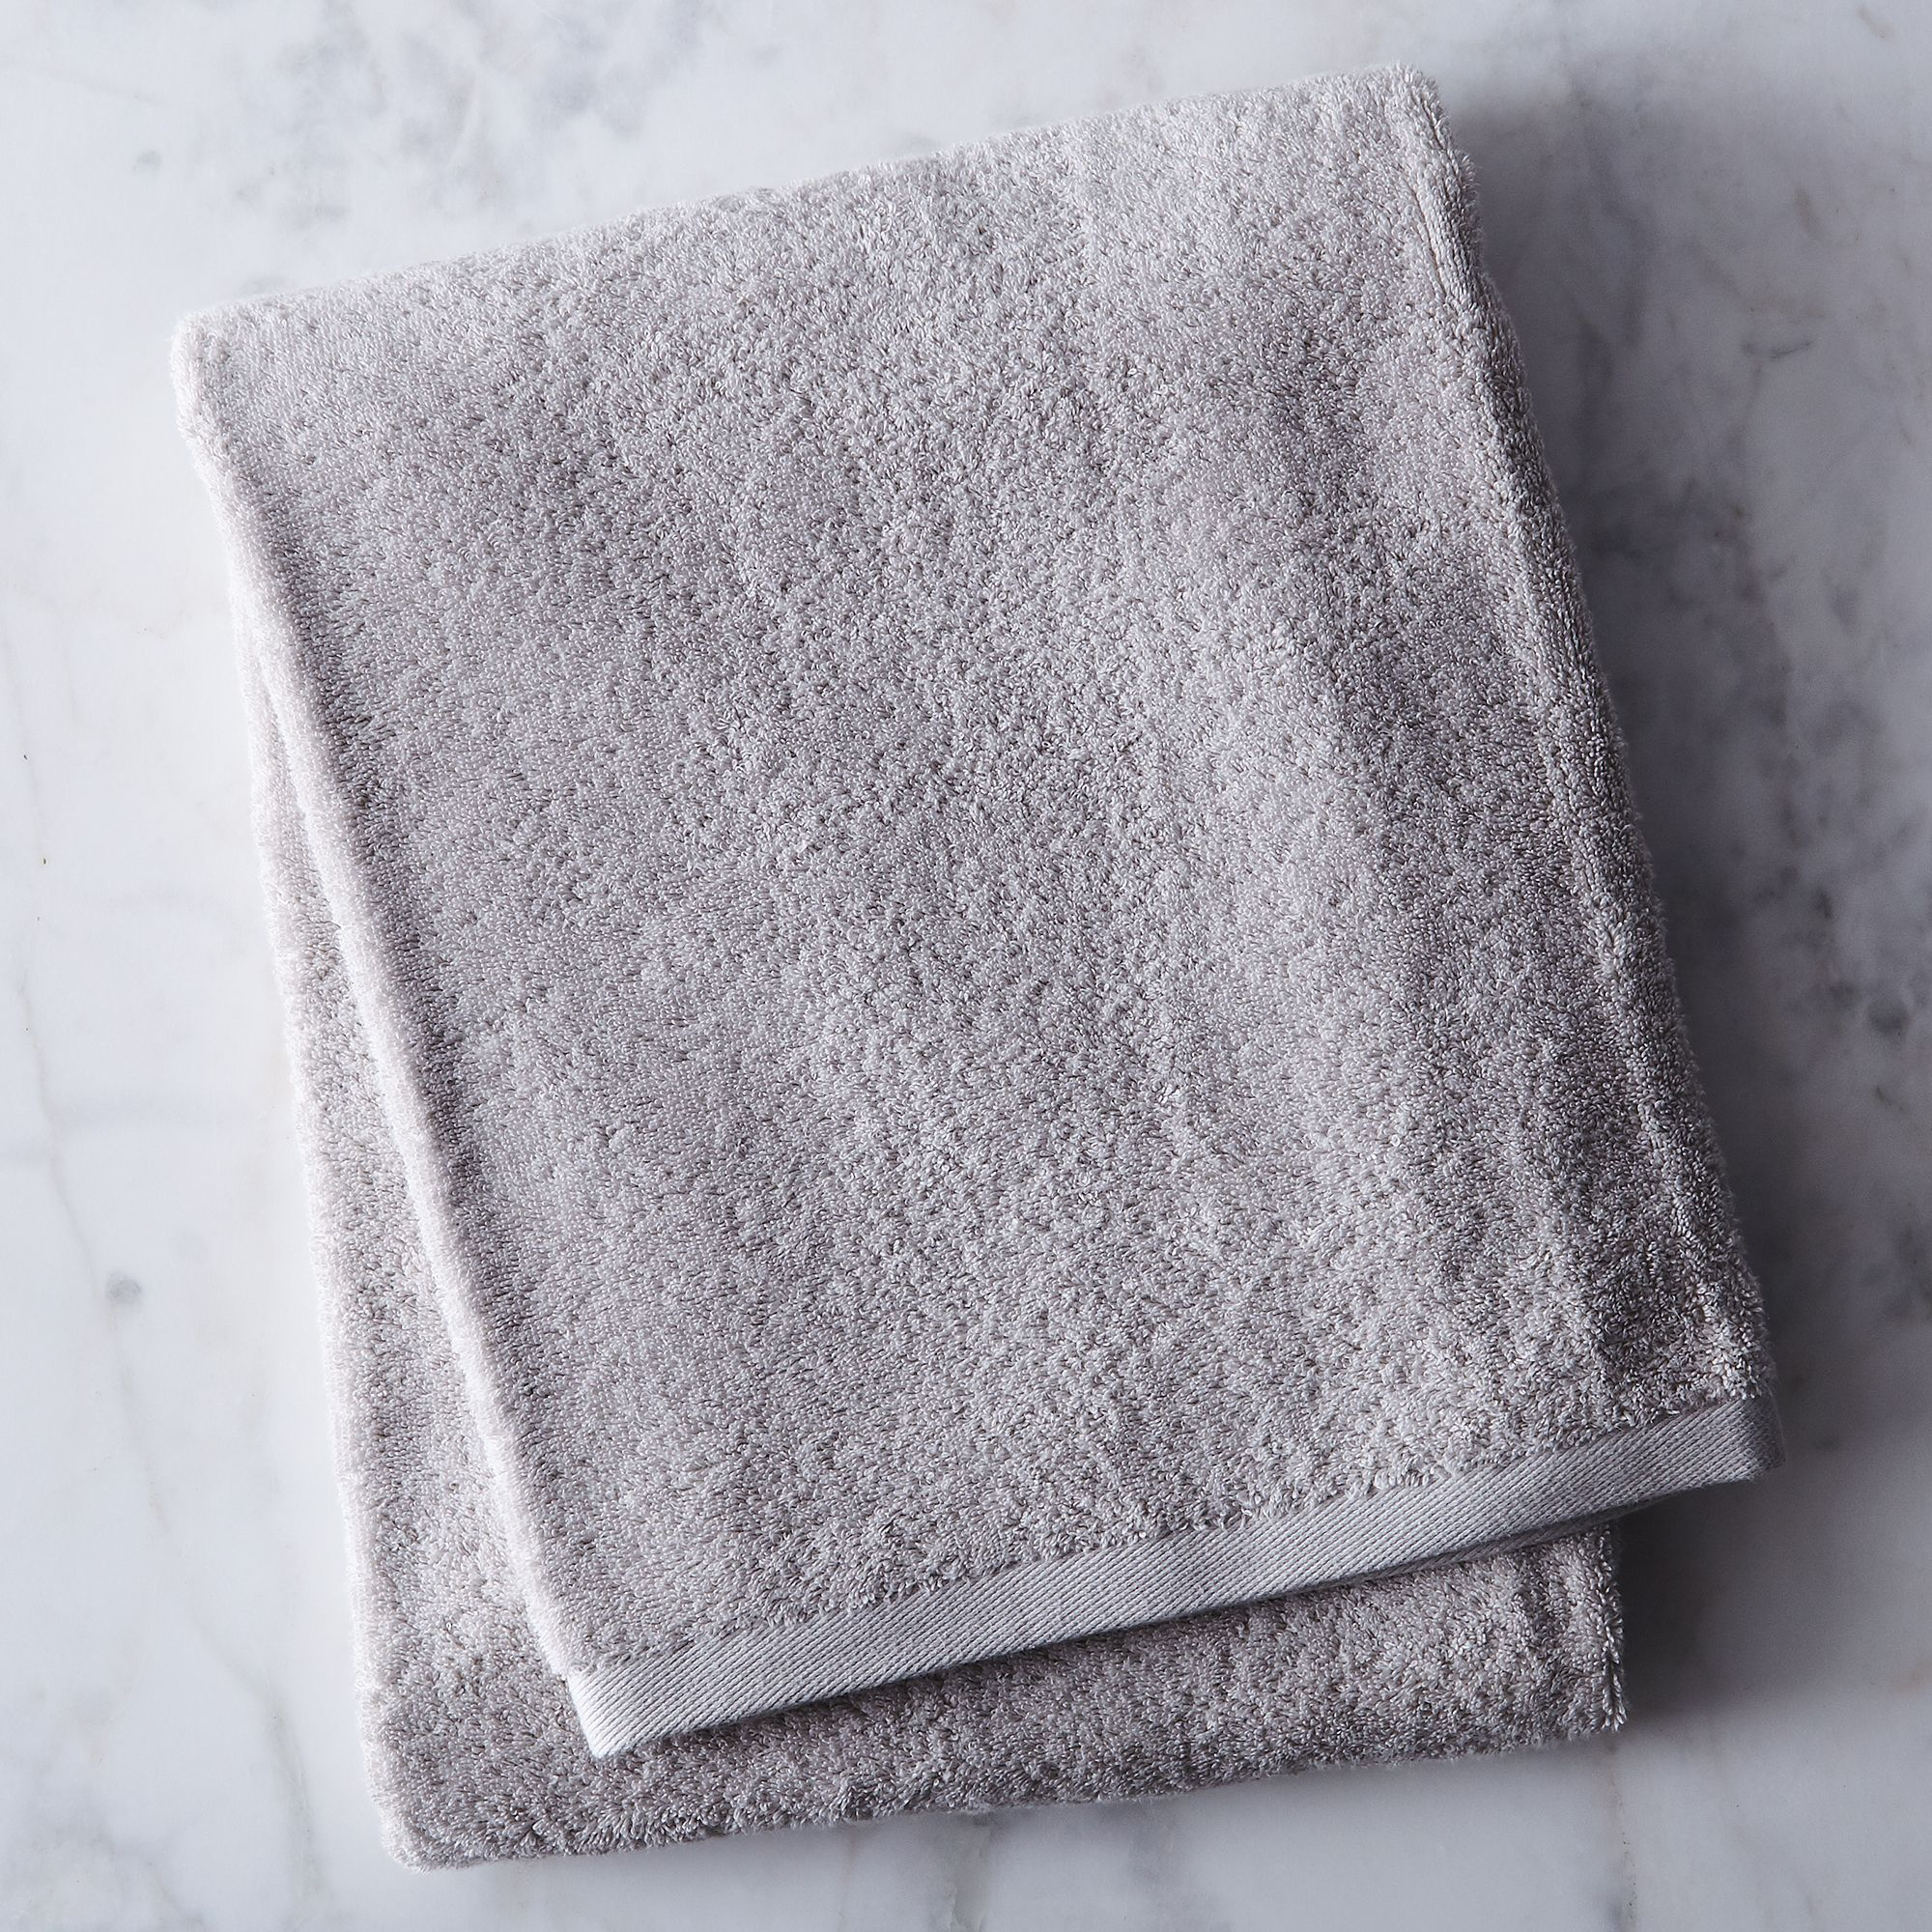 815a9785 fd76 4d0e a909 21ce88d720cf  2017 0926 snowe home soft cotton towels bath sheet ash grey silo rocky luten 005